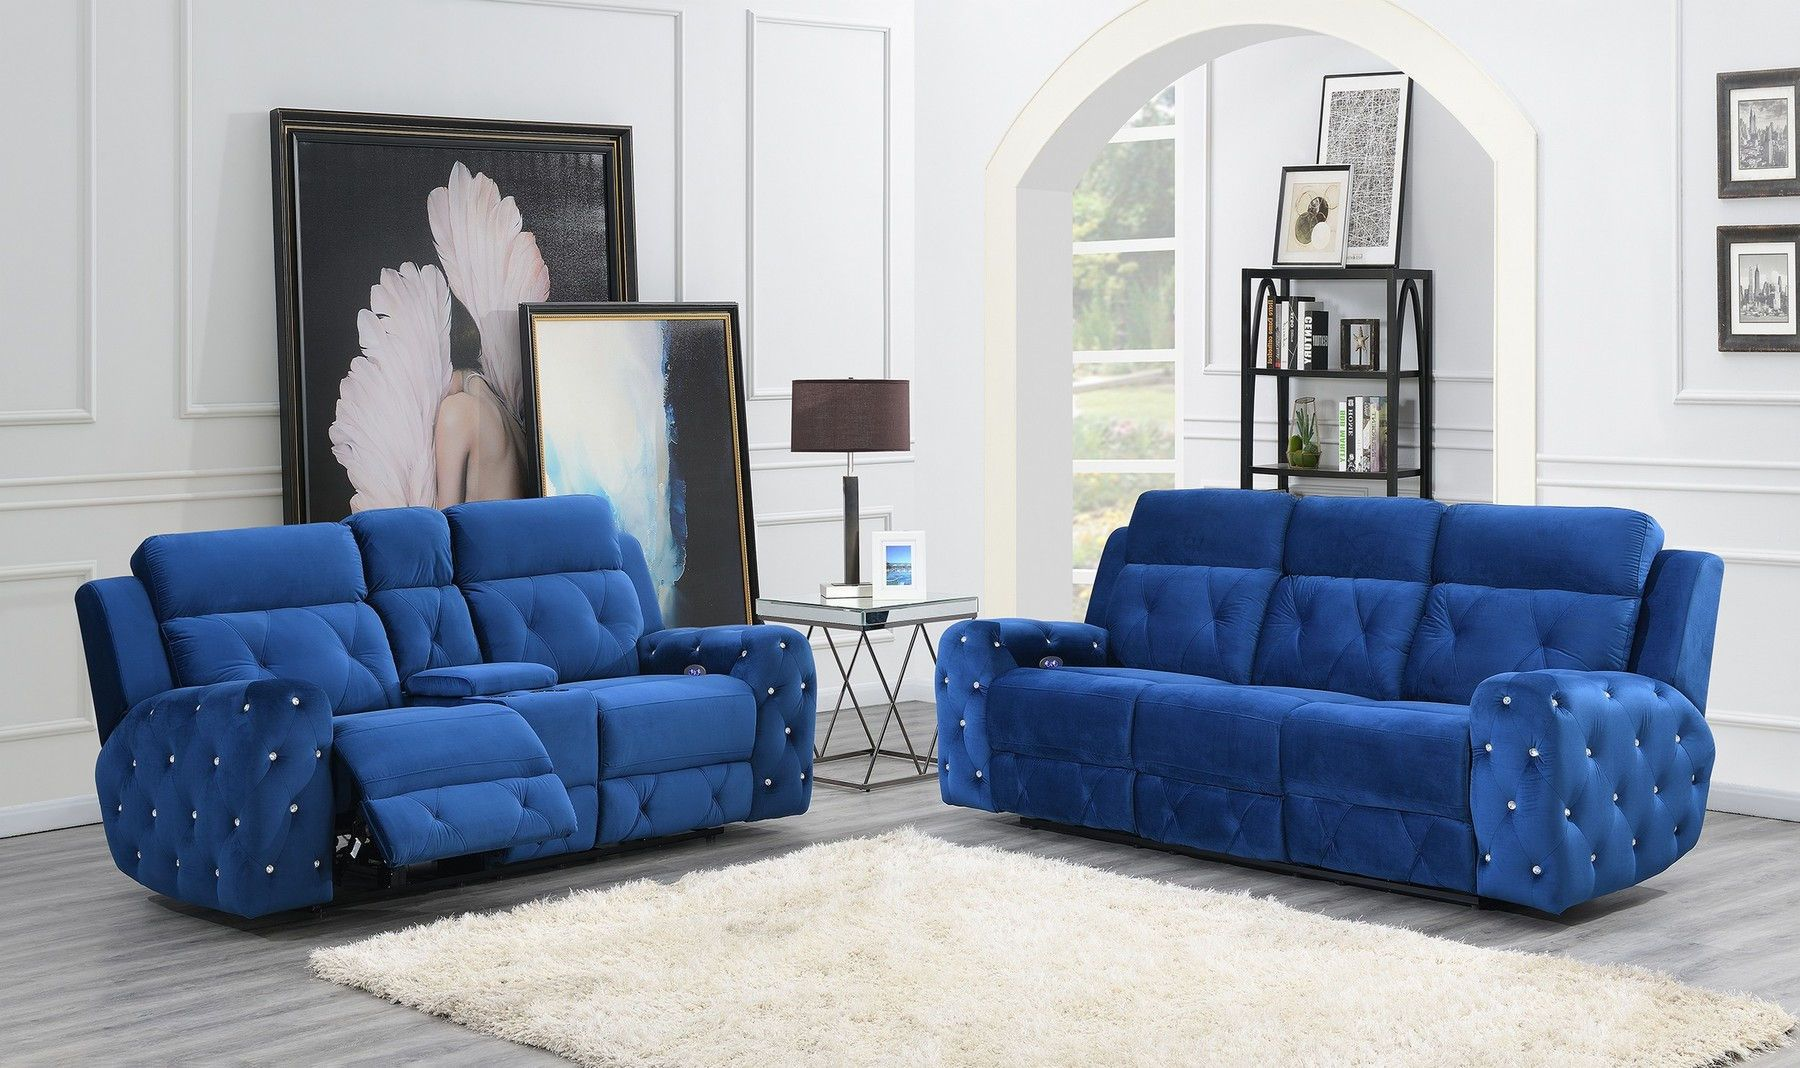 Best Global Usa G8311 Blue Velvet Fabric Tufted Reclining Sofa 400 x 300